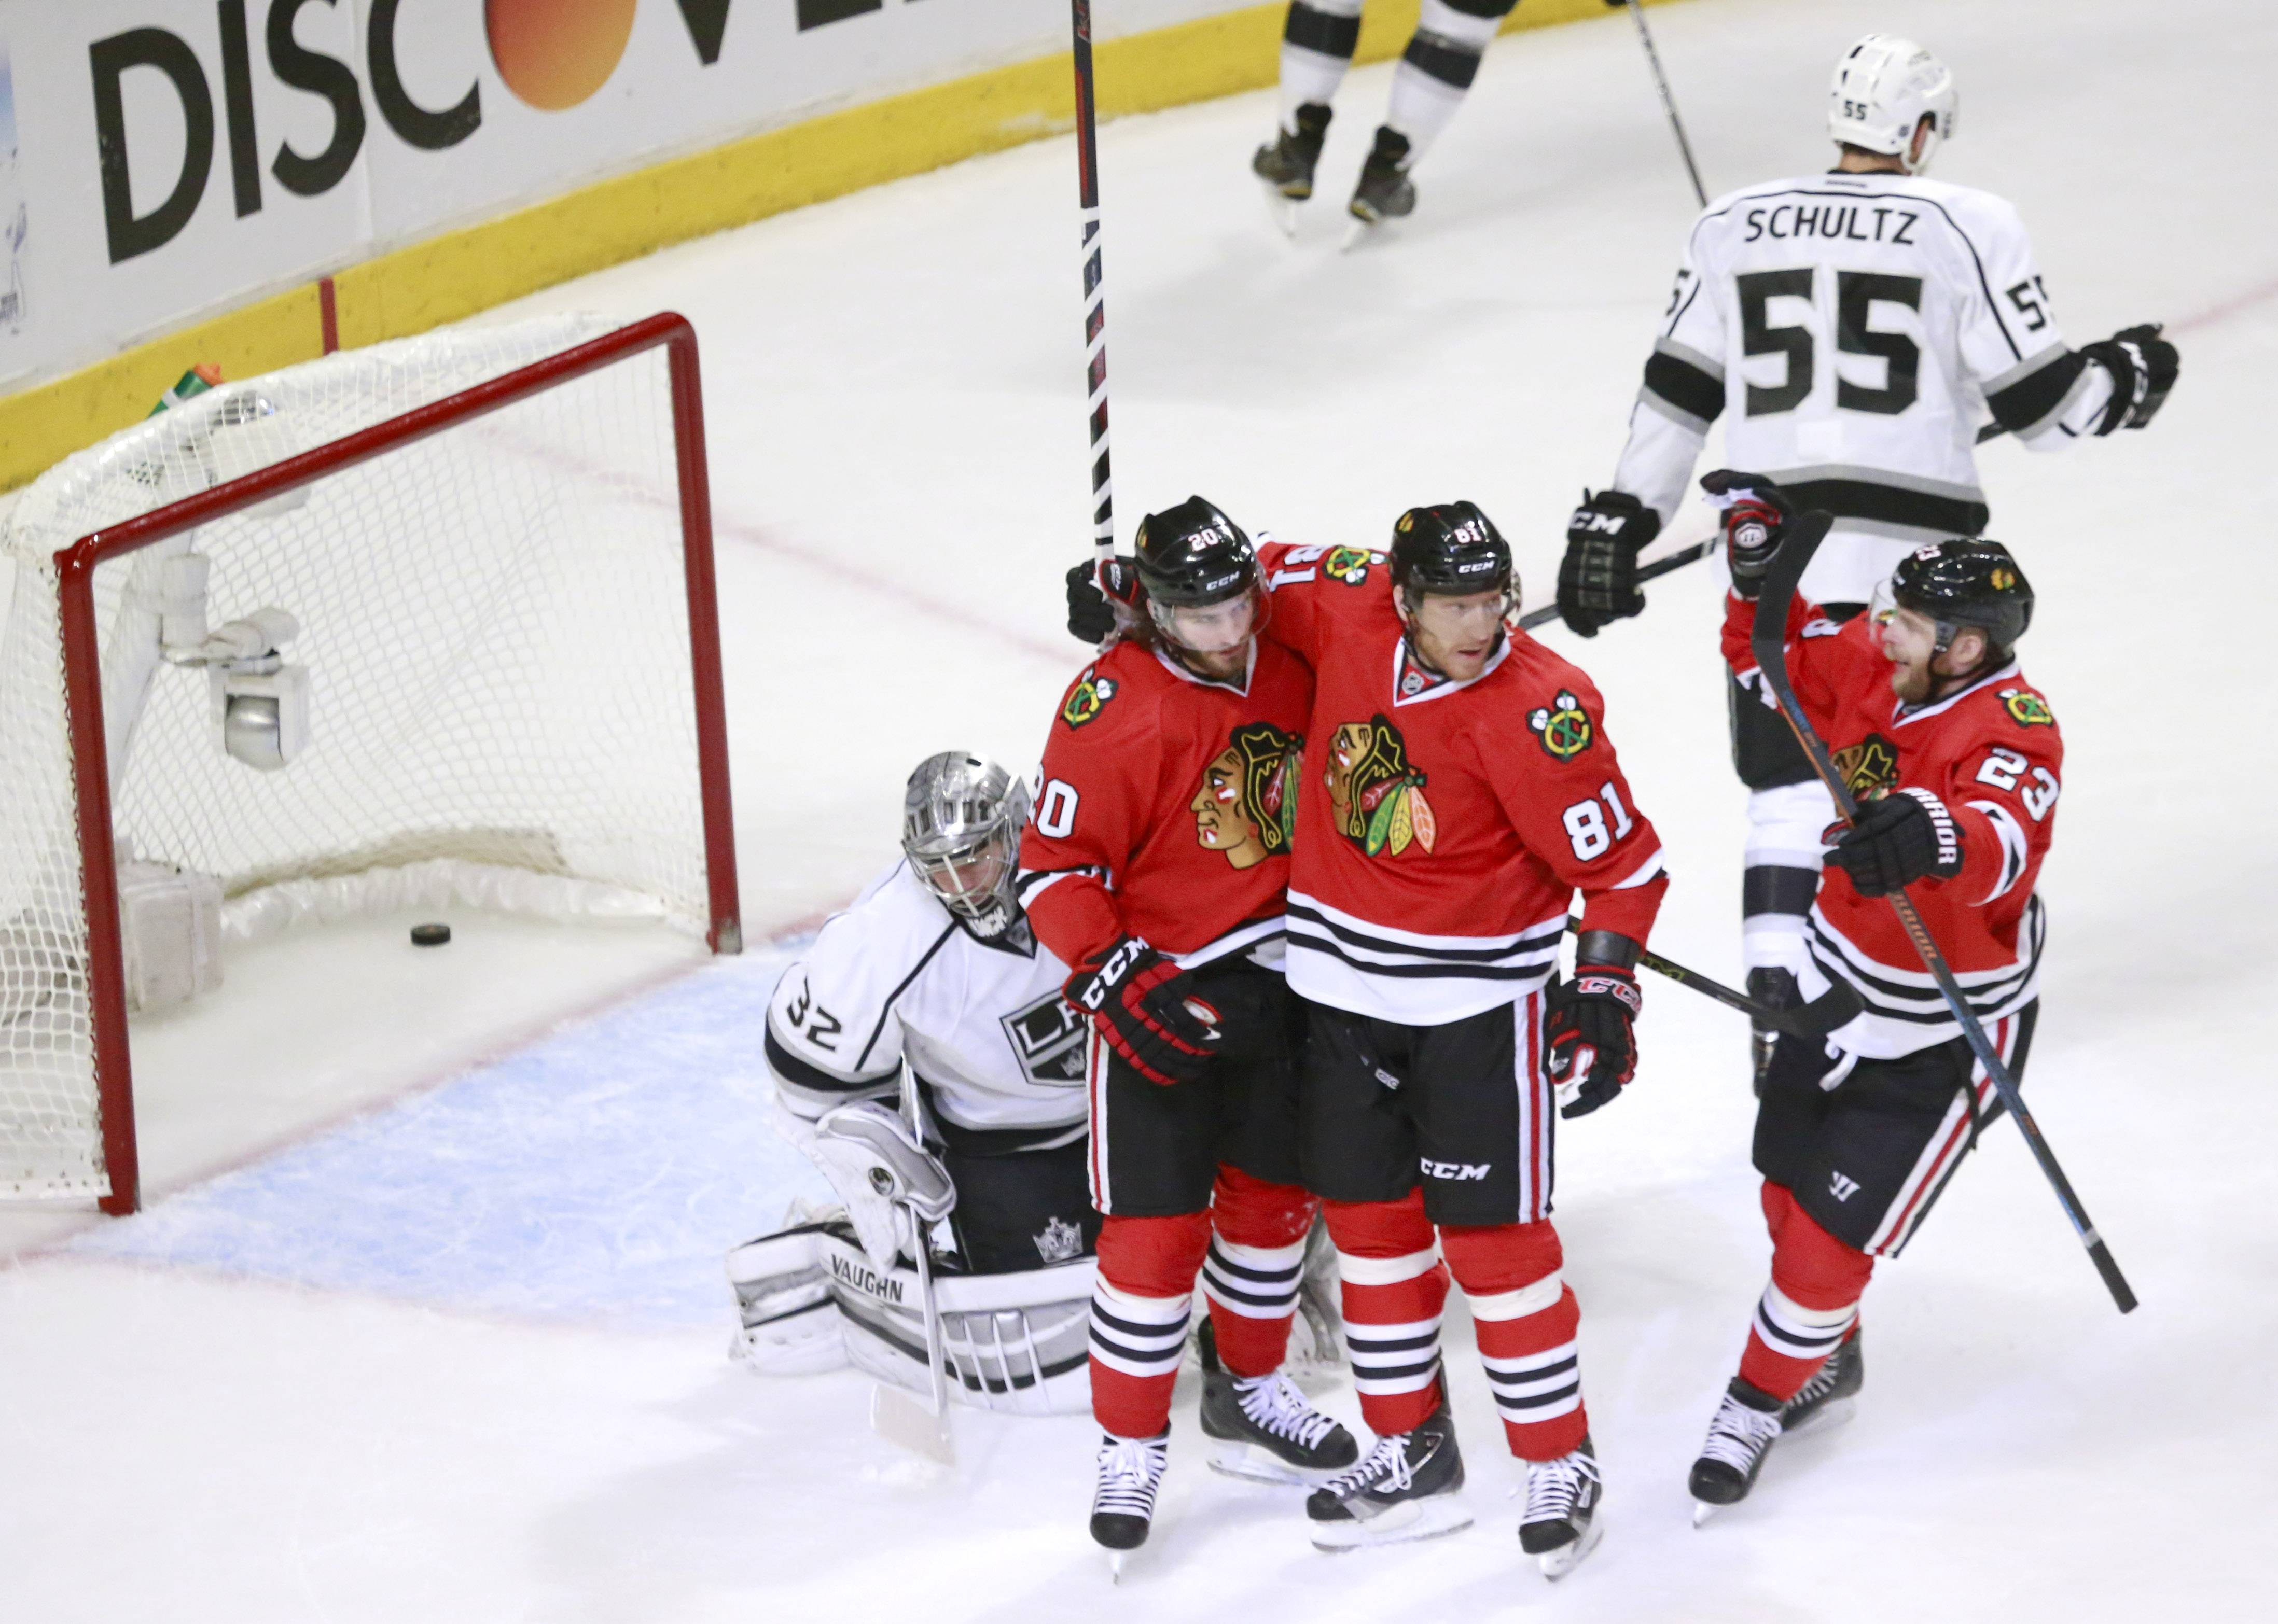 Blackhawks left wing Brandon Saad (20), Marian Hossa (81) and Kris Versteeg (23) celebrate Saad's goal against Los Angeles Kings goalie Jonathan Quick (32) as Jeff Schultz (55) skates away during the first period.